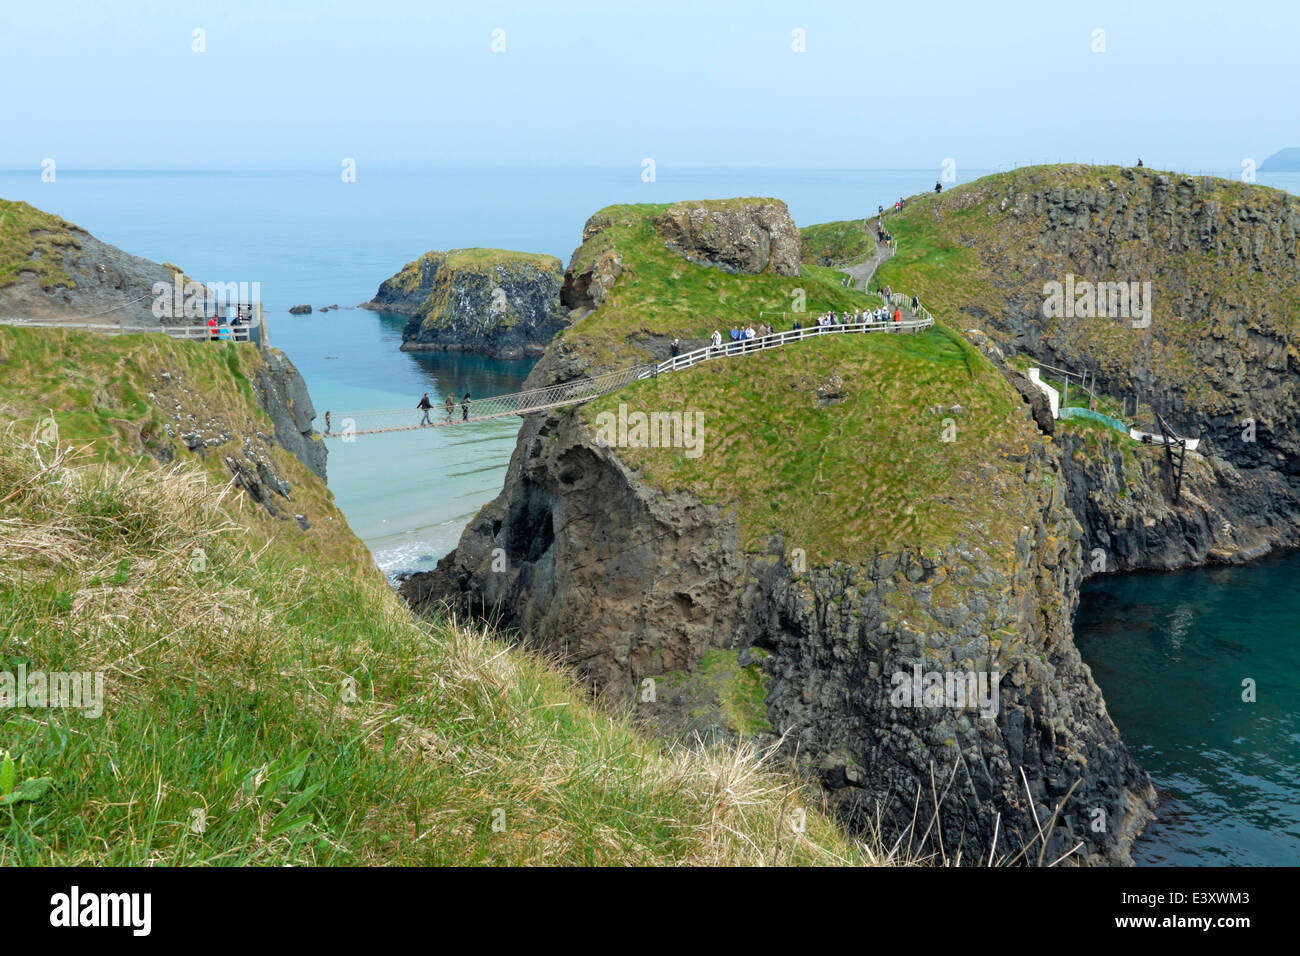 View on Carrick-a-Rede island and the famous Carrick-a-Rede rope bridge near Ballintoy in County Antrim, Northern - Stock Image